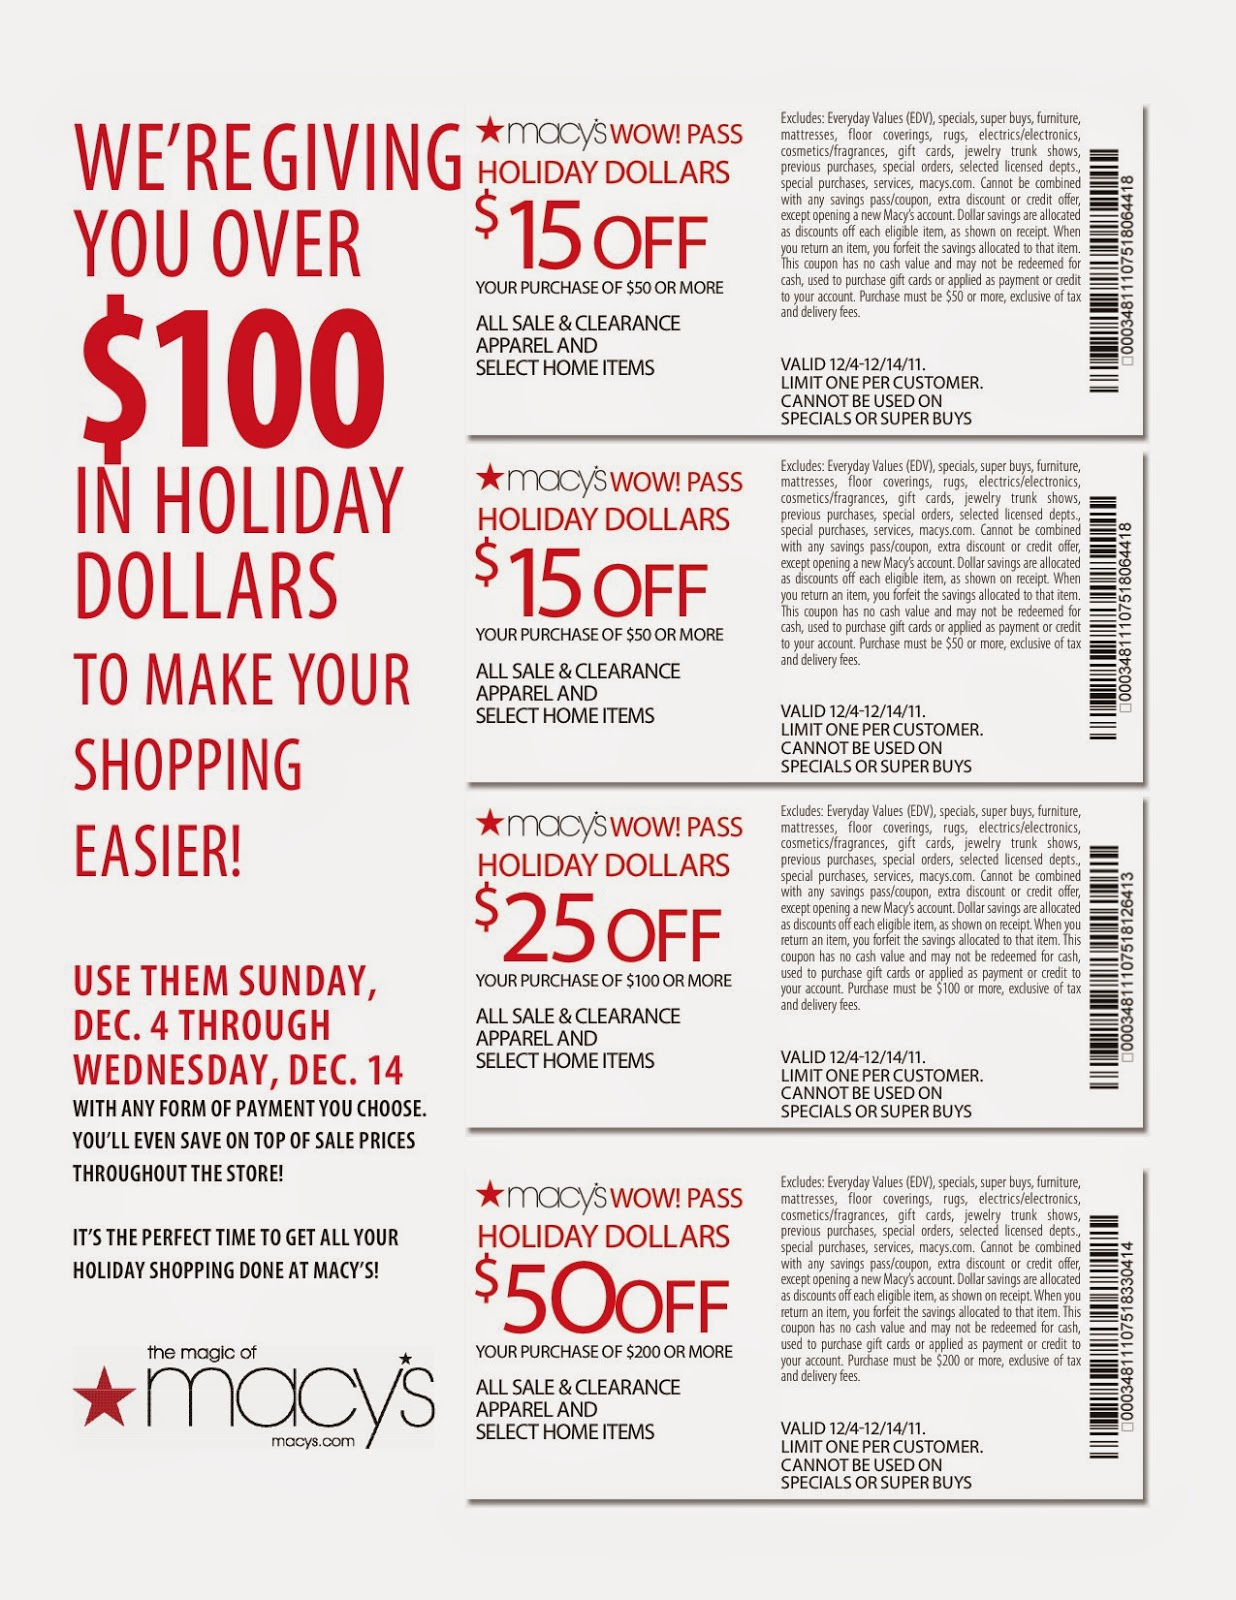 free_macys_savings_Online_Copons